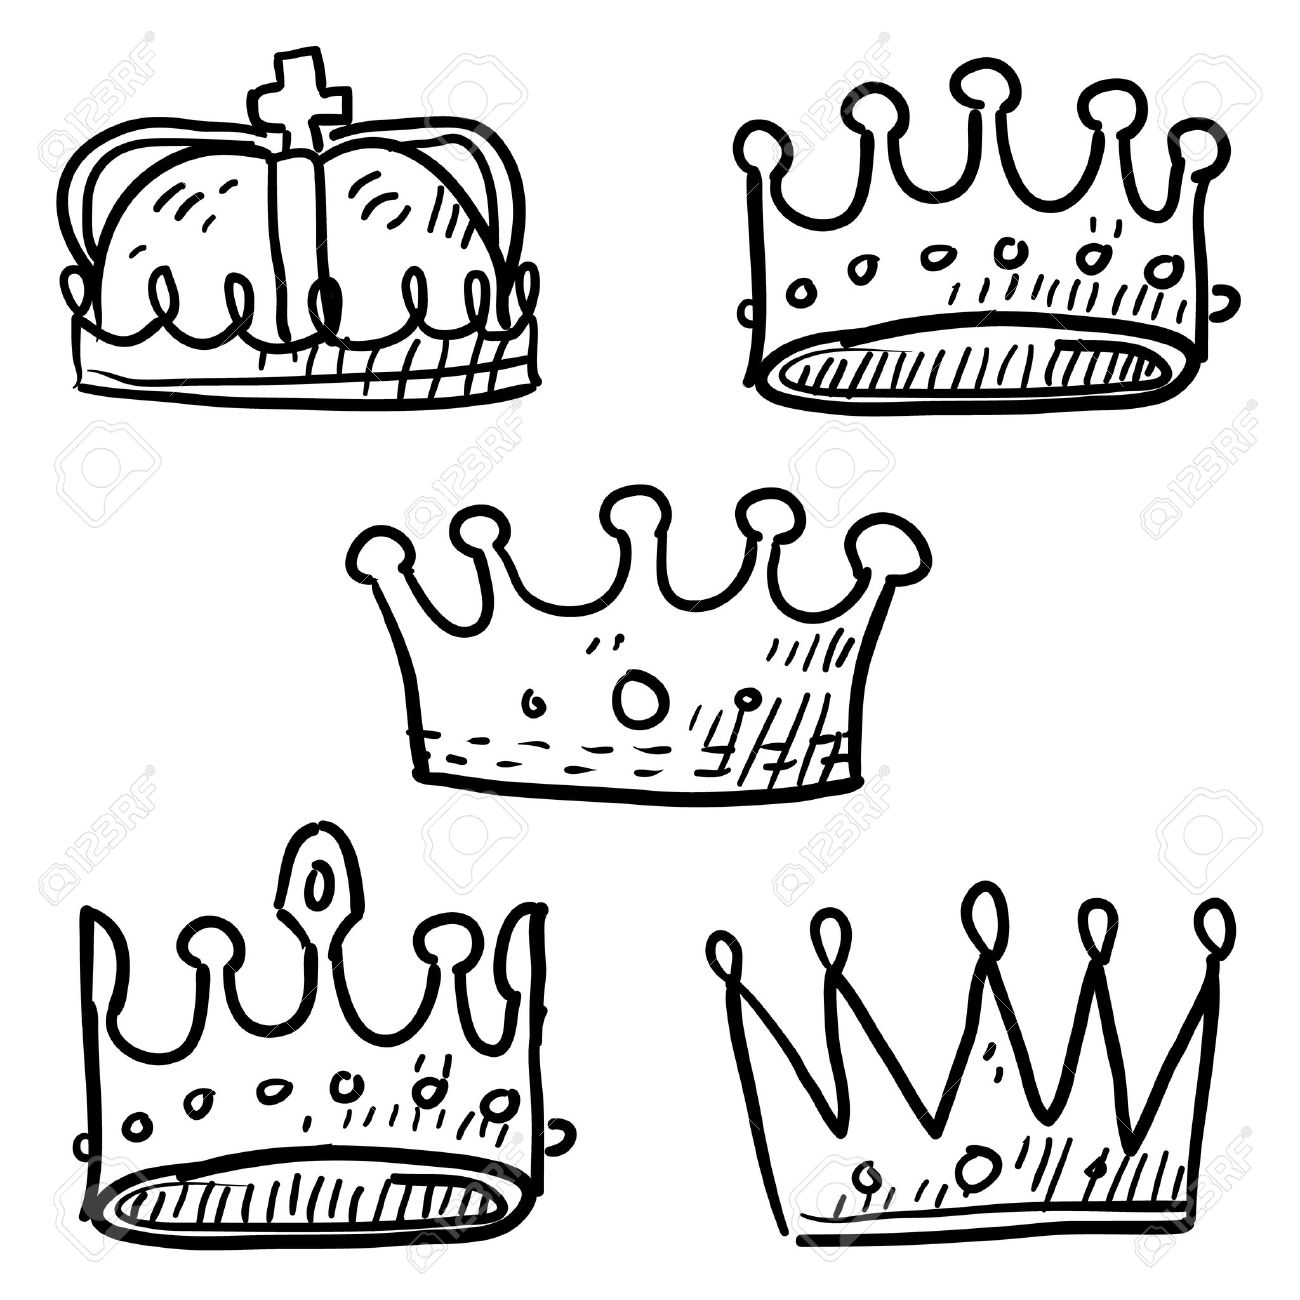 724 bloodline cliparts stock vector and royalty bloodline bloodline doodle style set of royal crowns in vector format